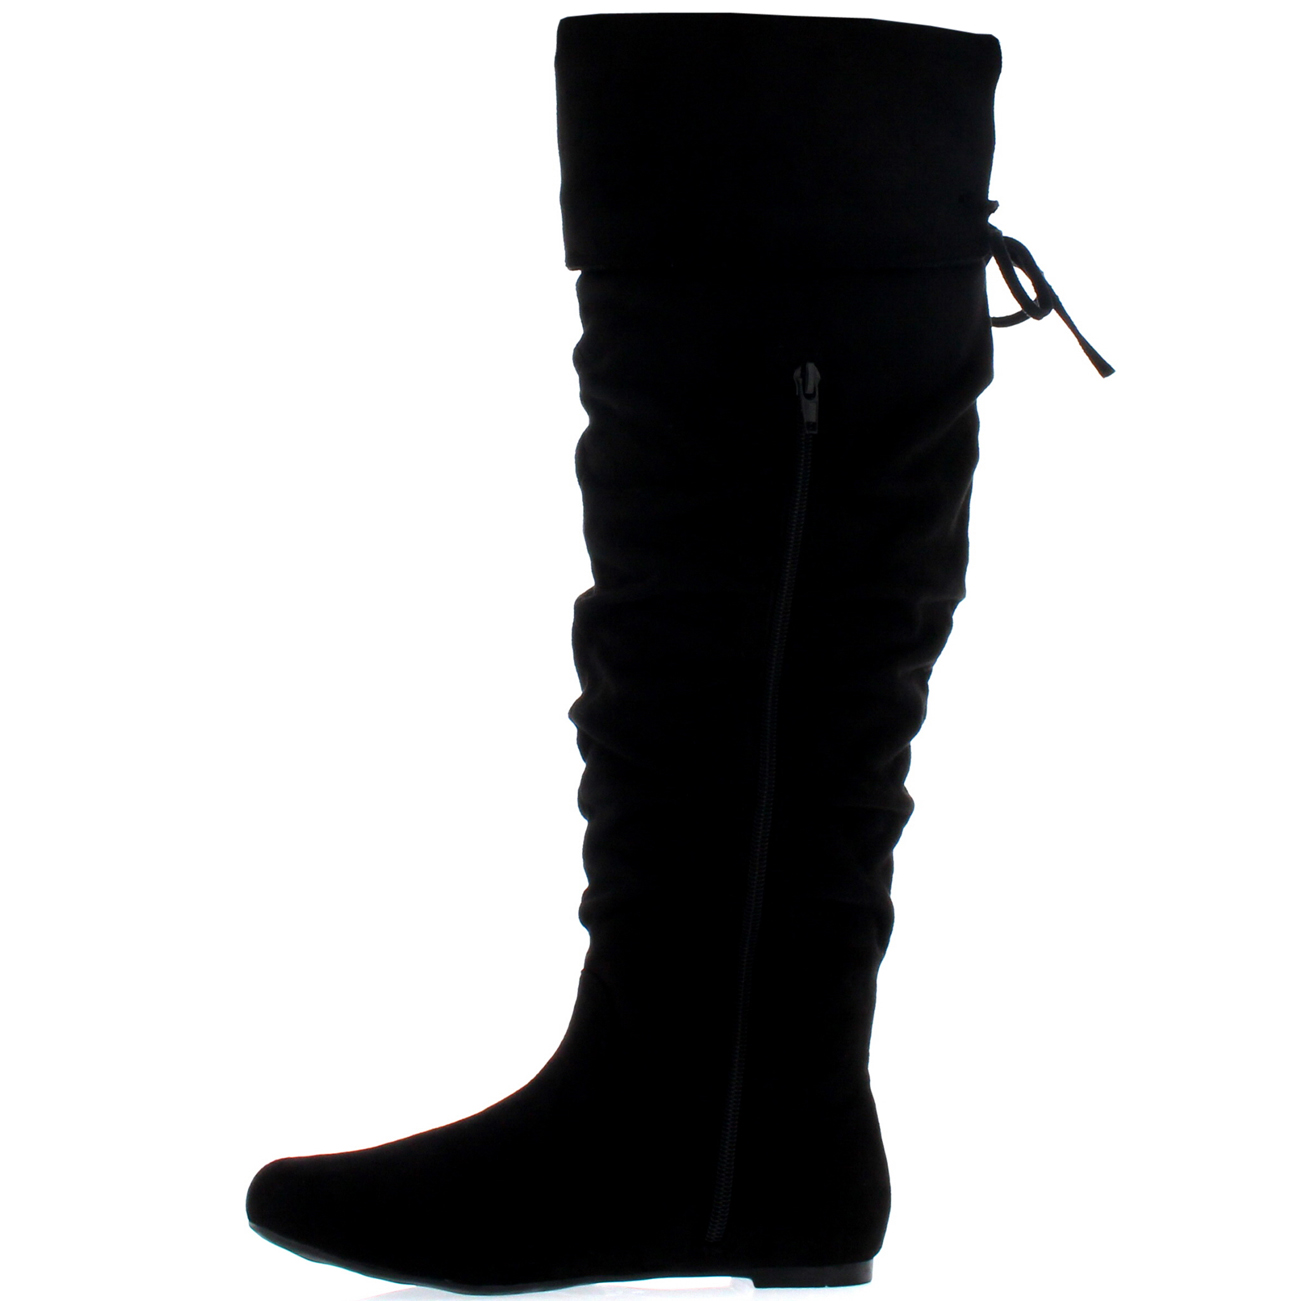 Women's Winter Flat Heel Leather Casual Riding Long Boots